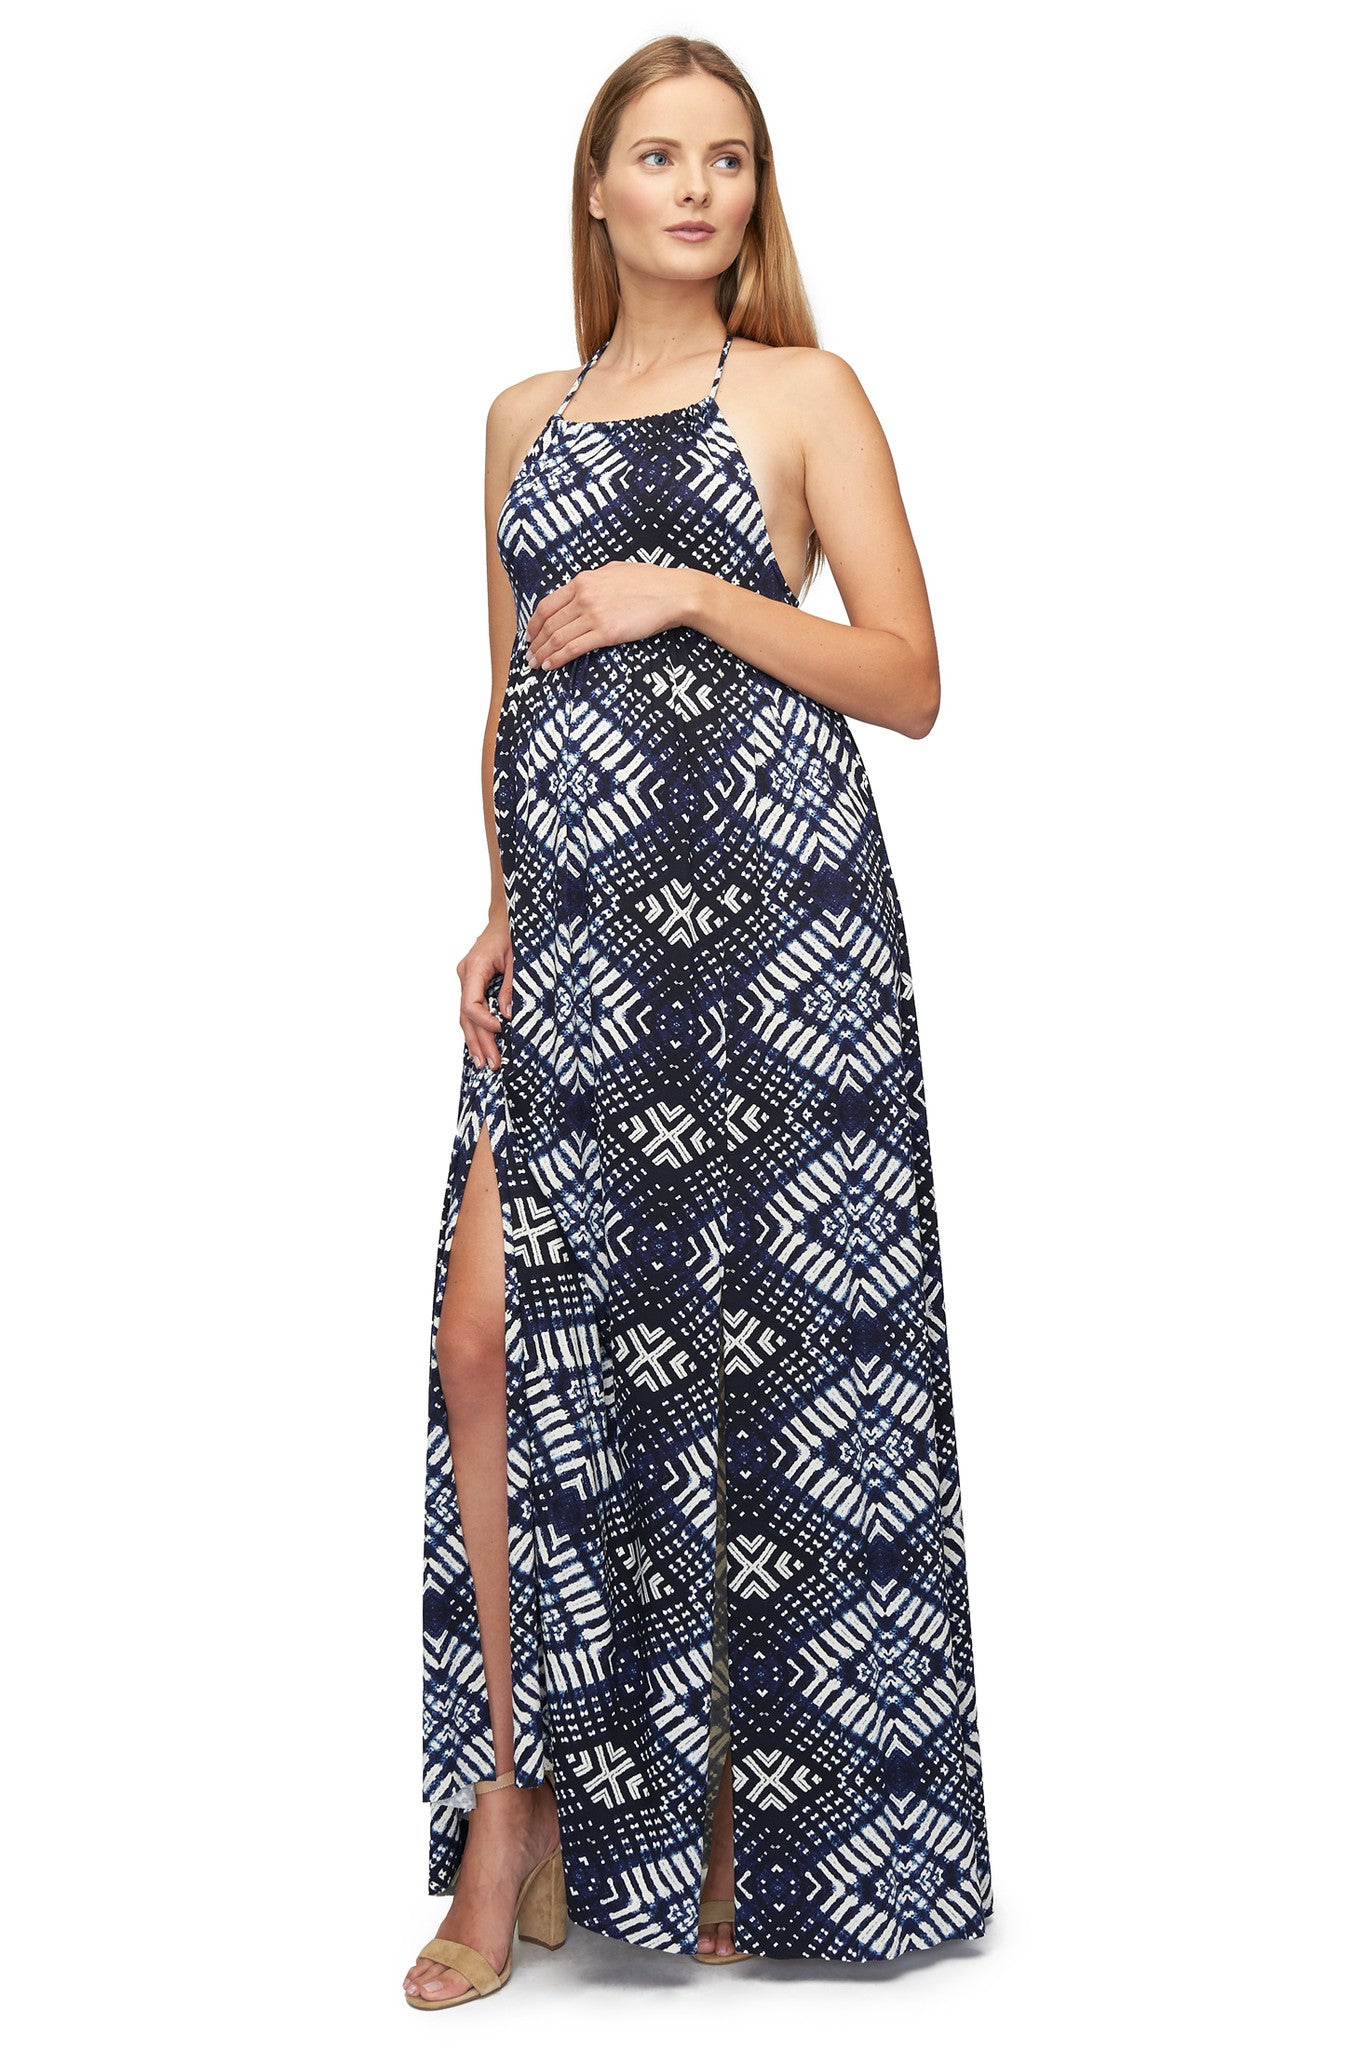 Trudee Dress Print - Indigo Ikat